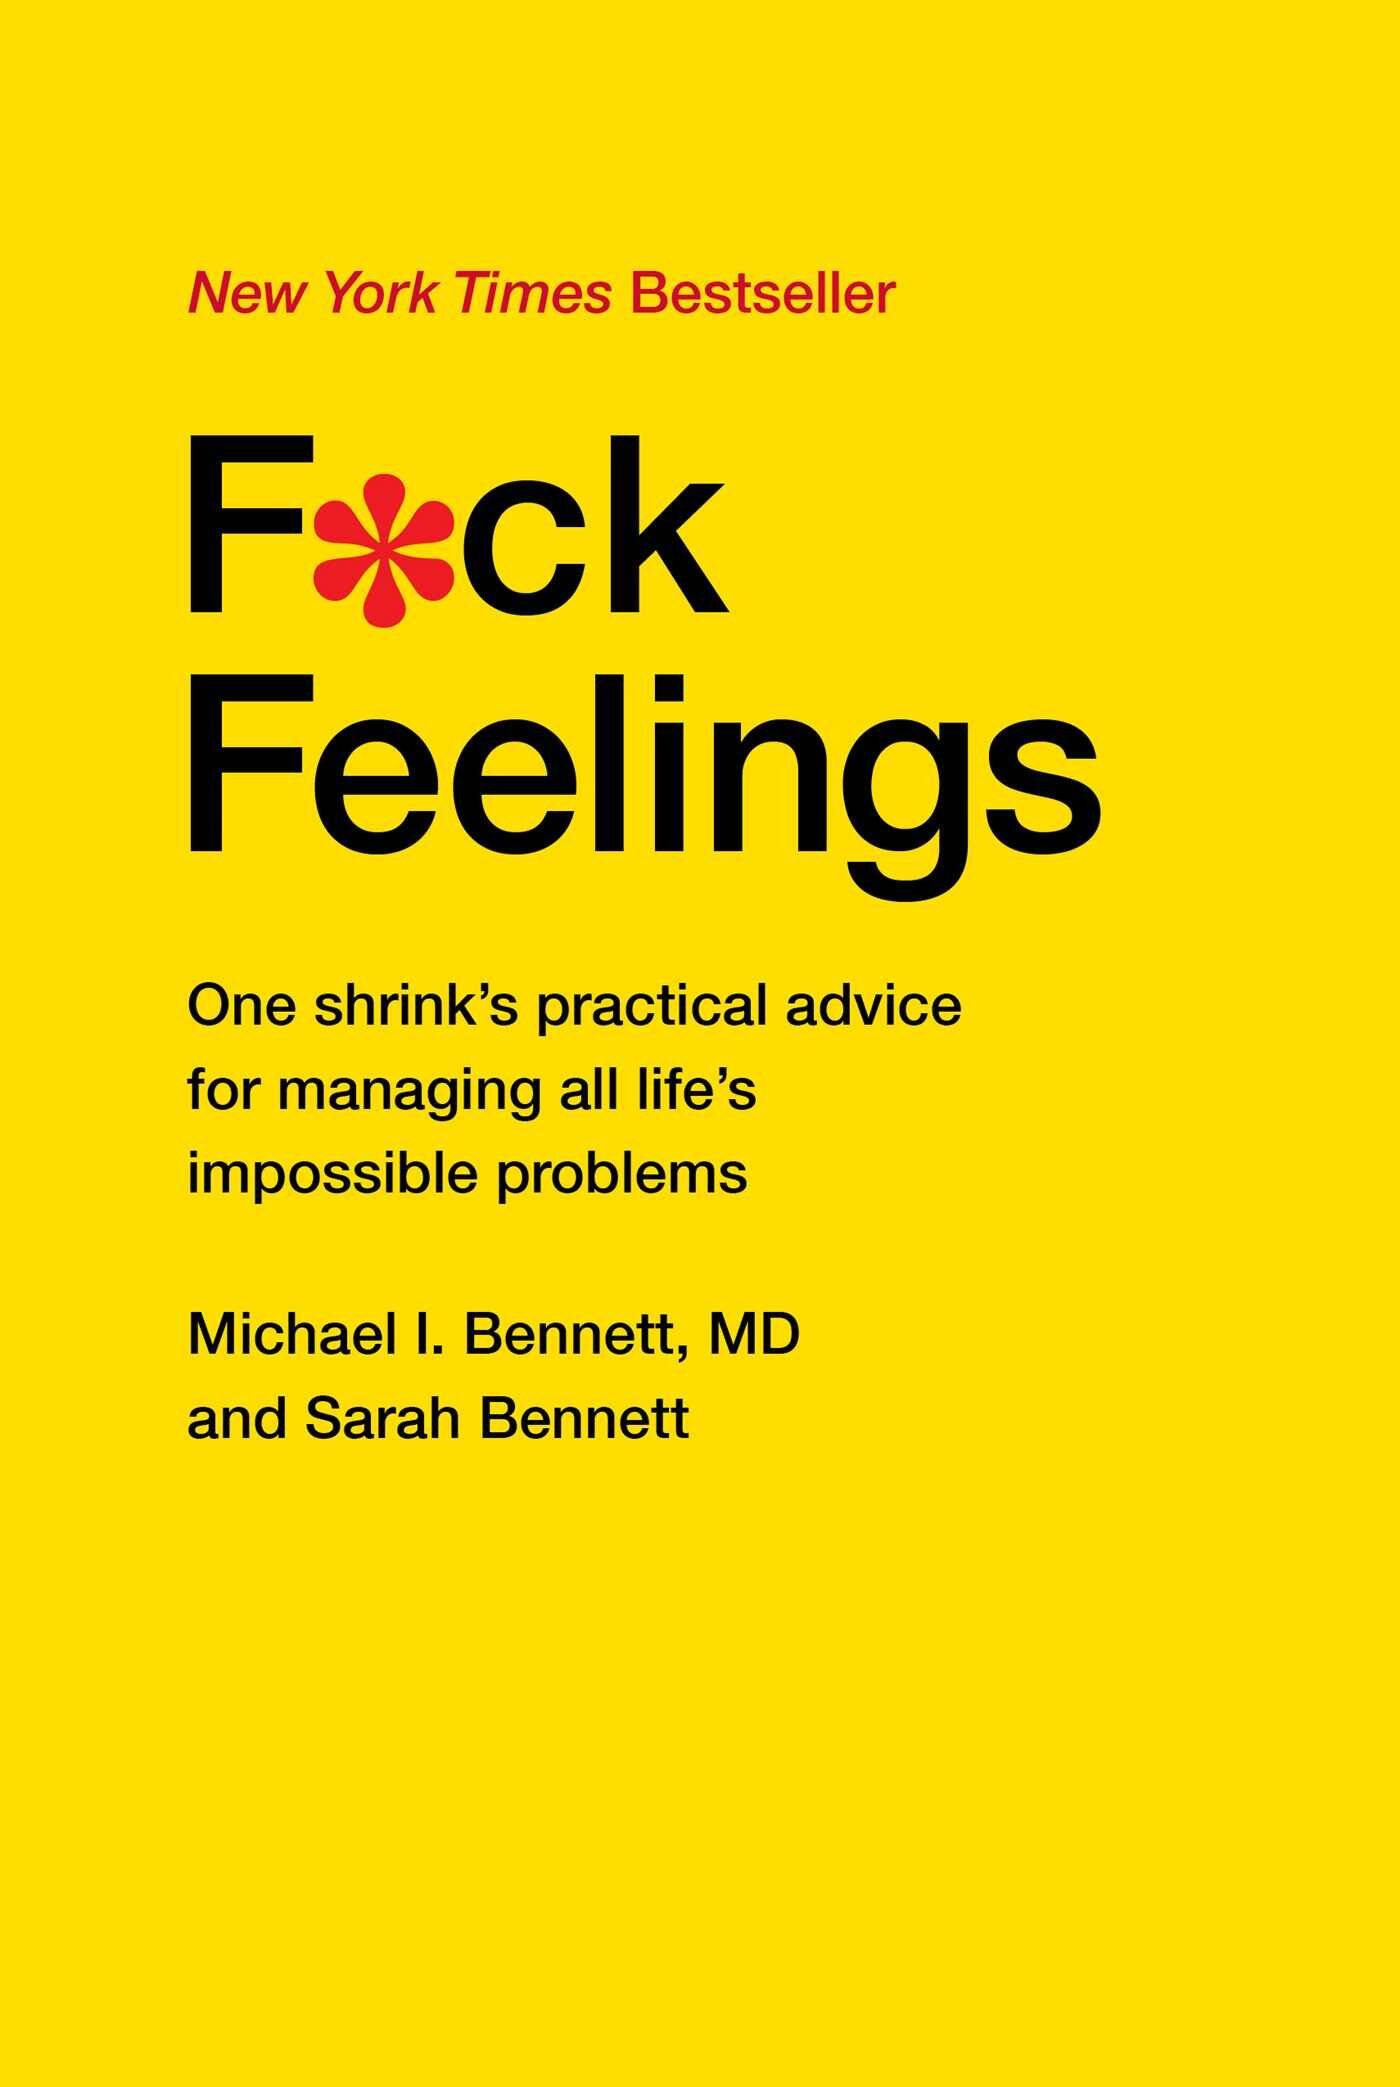 F*ck Feelings: Life's Impossible Problems - http://coolthings.us